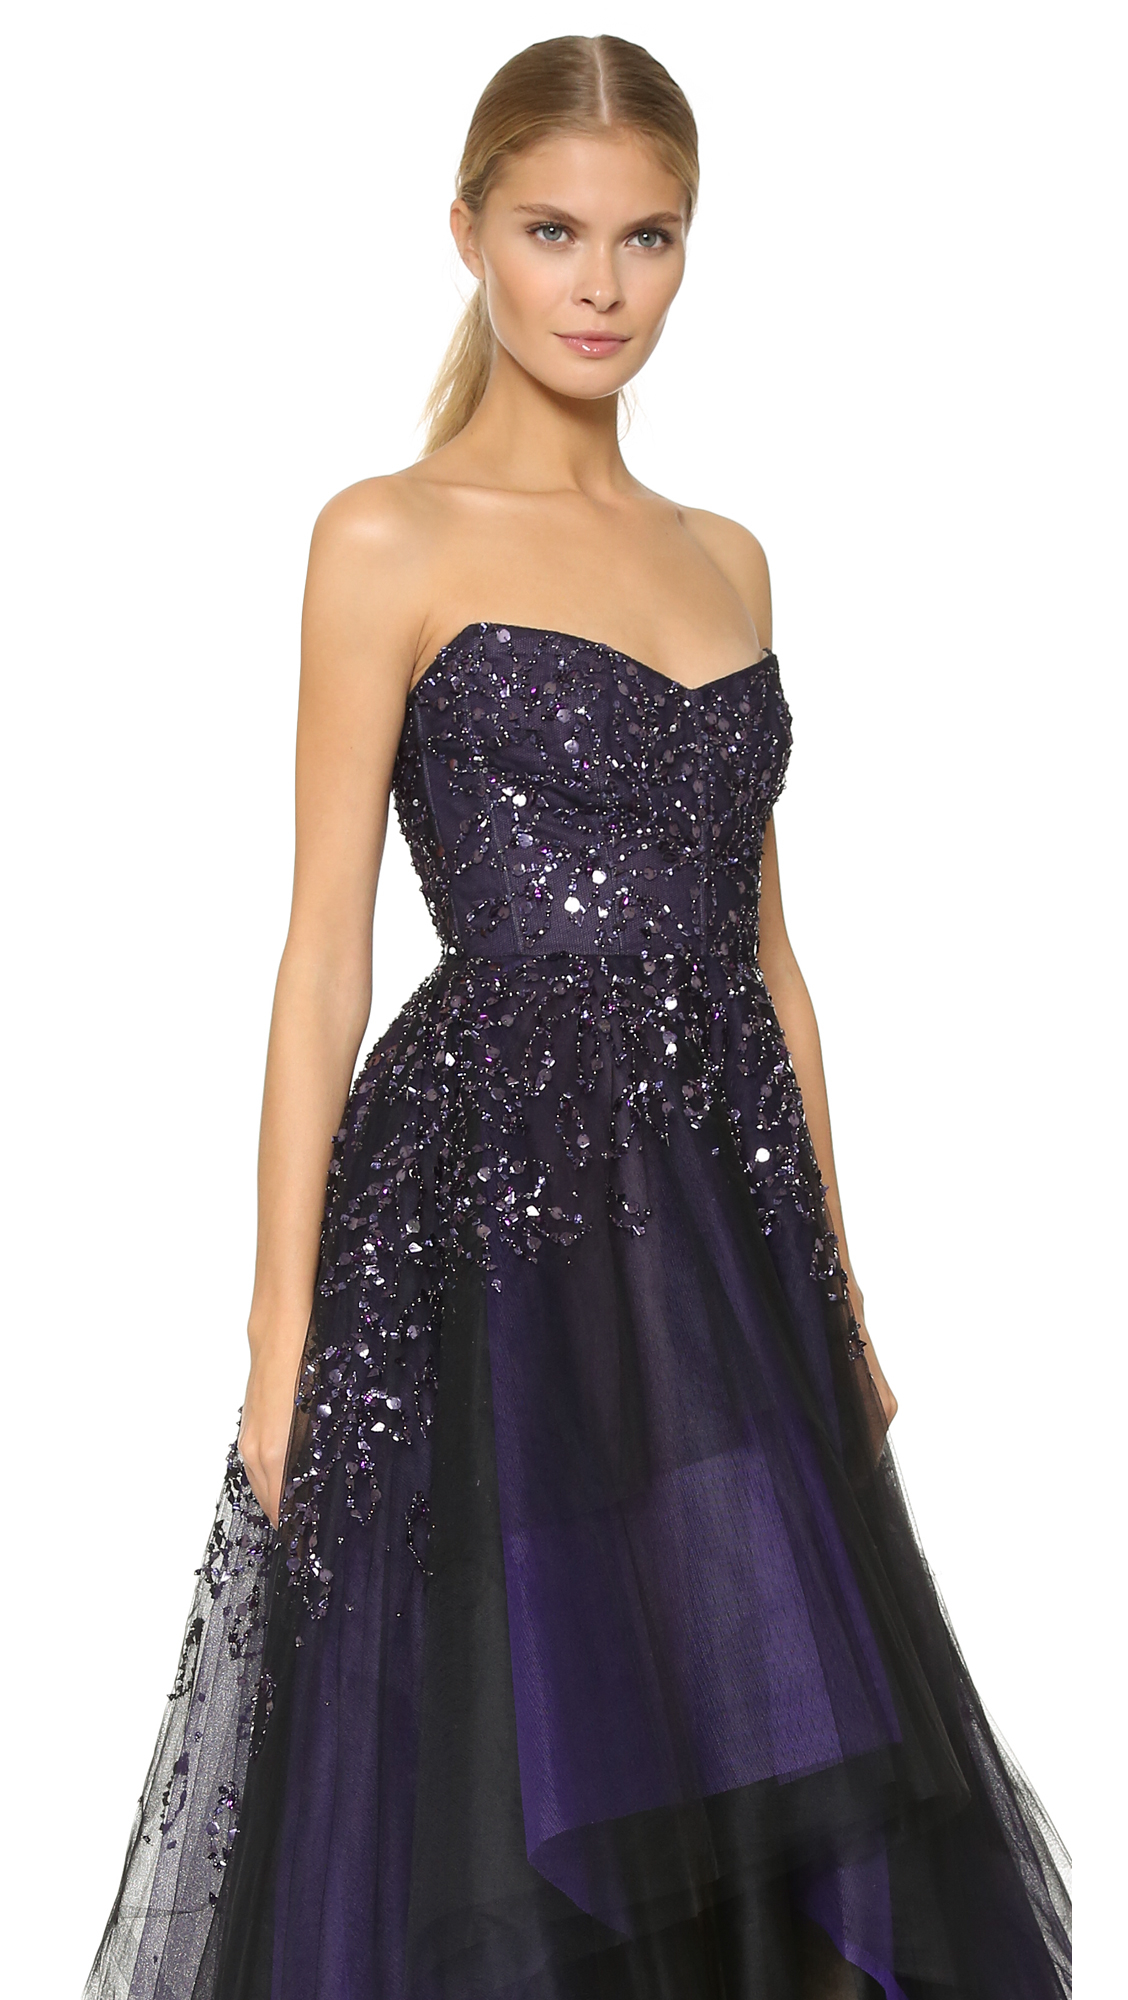 Monique lhuillier Strapless Ball Gown - Deep Plum in Purple | Lyst